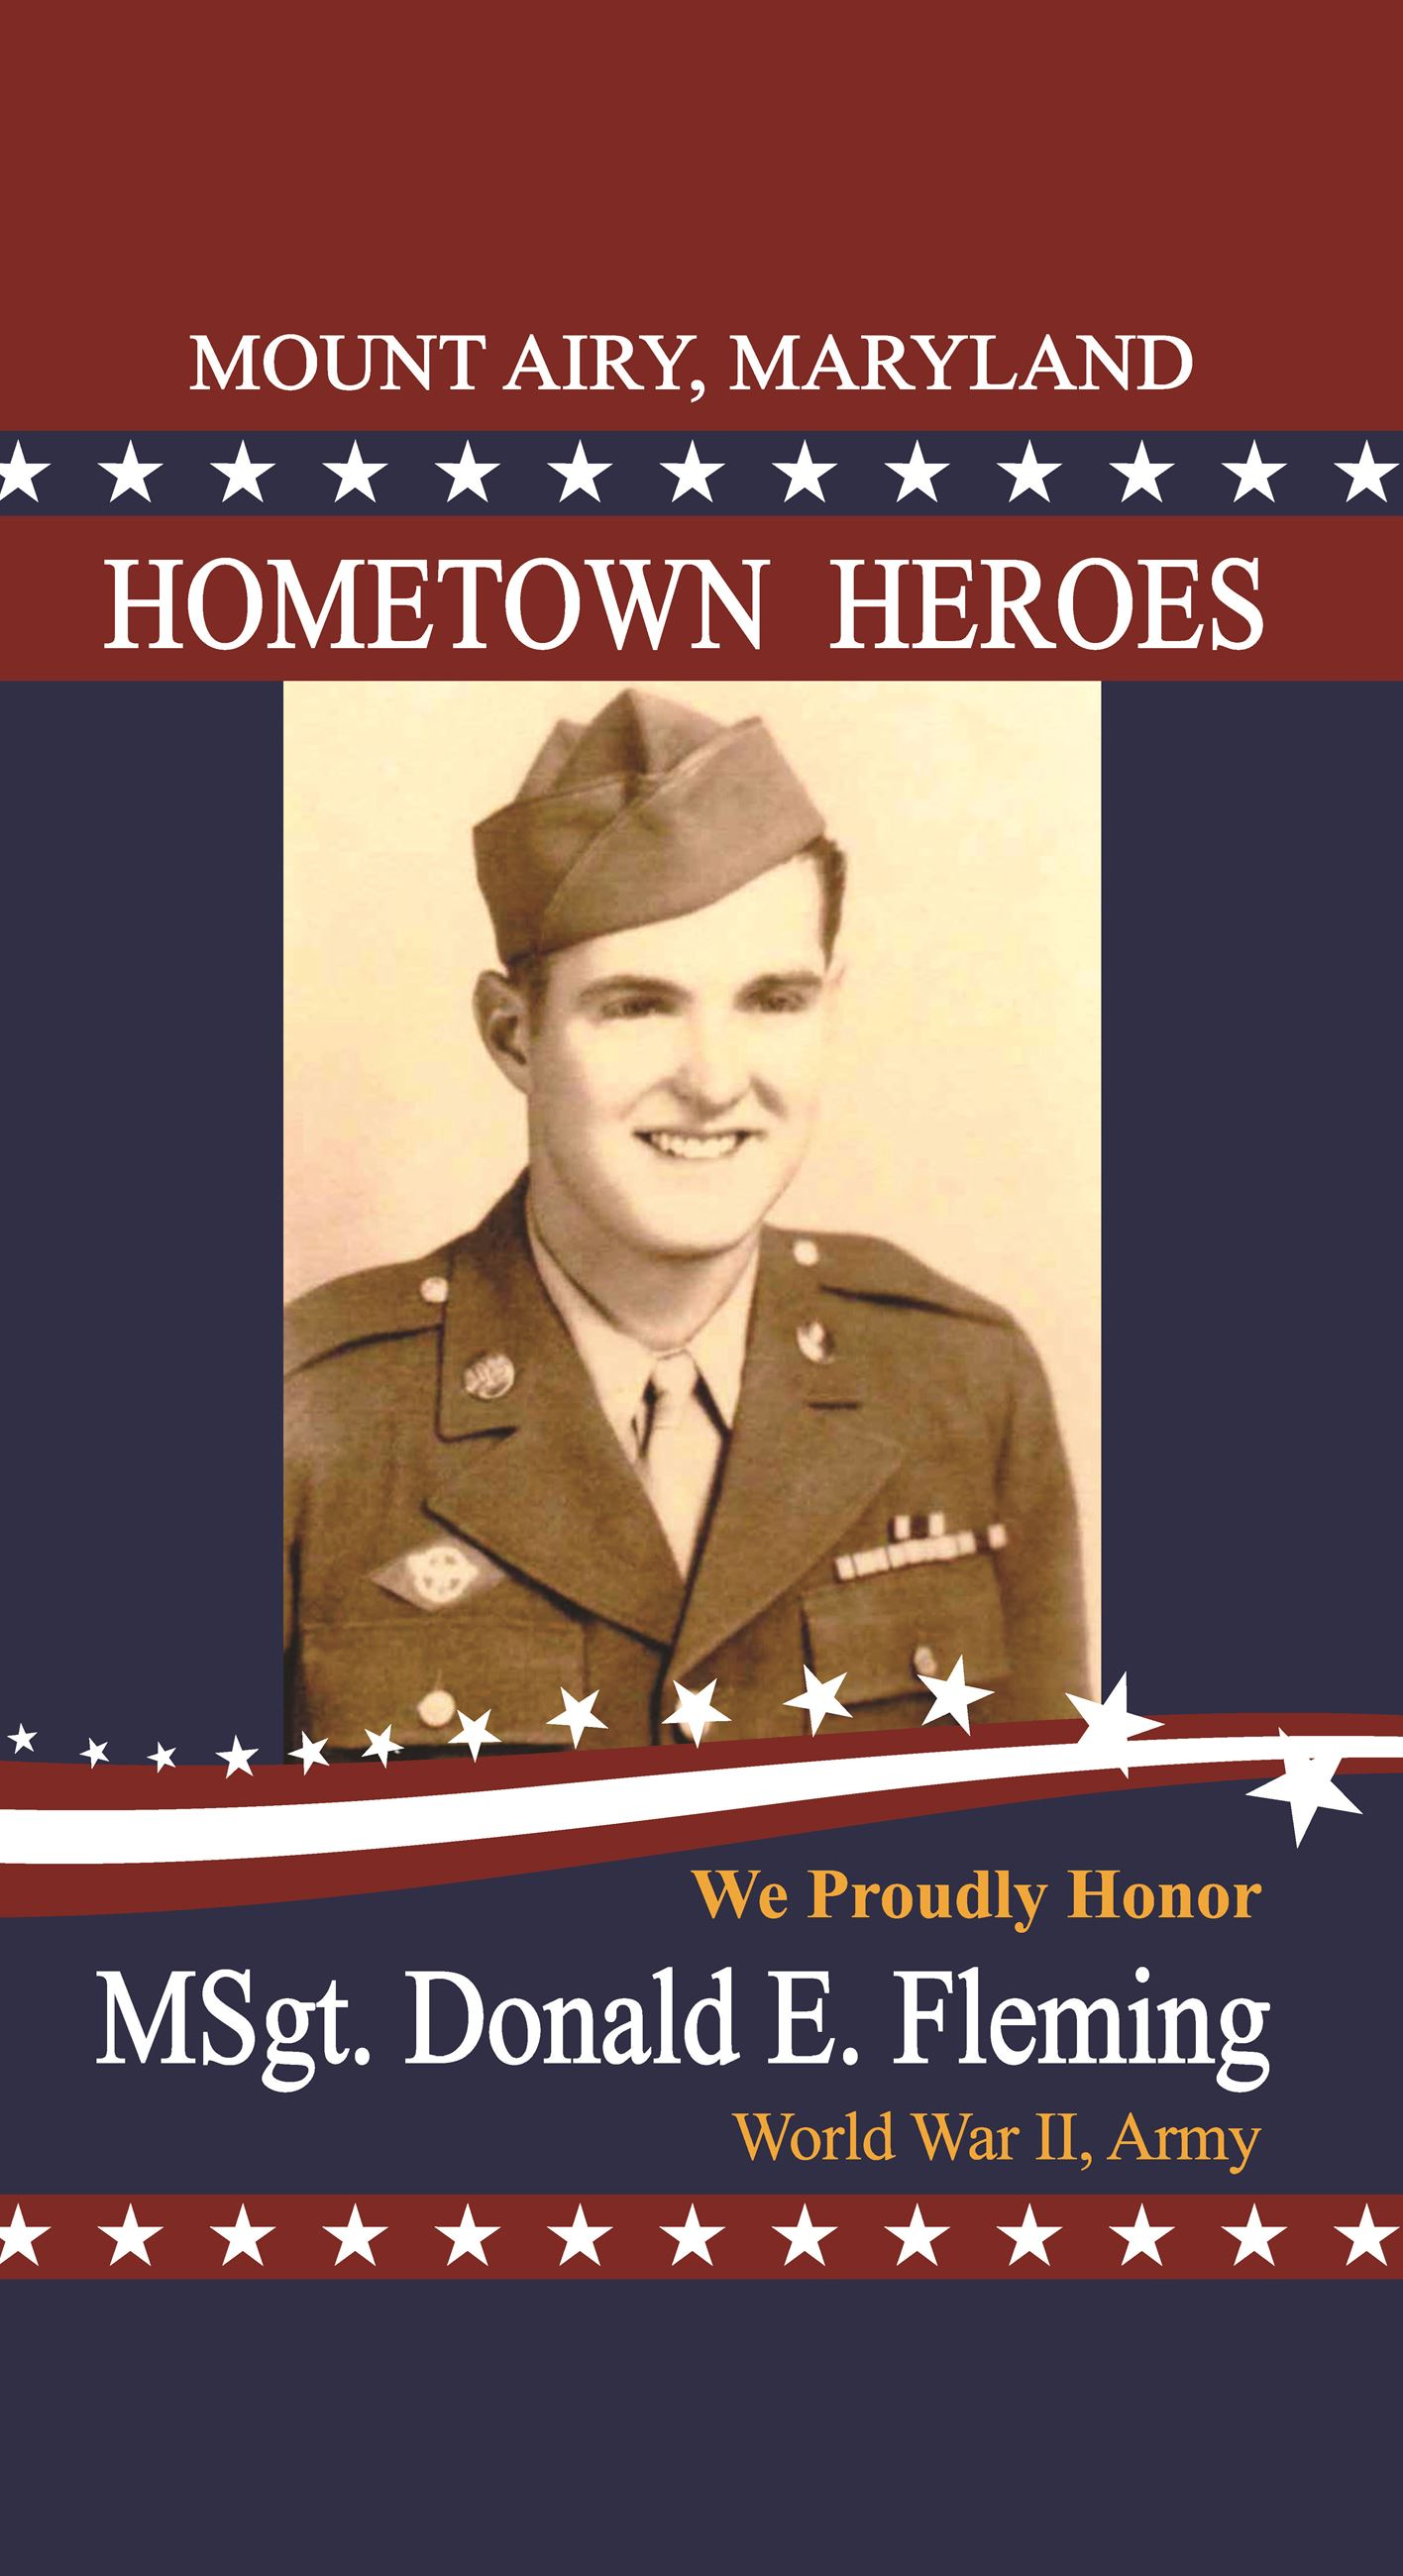 DonaldEFleming_MtAiryHeroes-Flag-24x44-Proof003